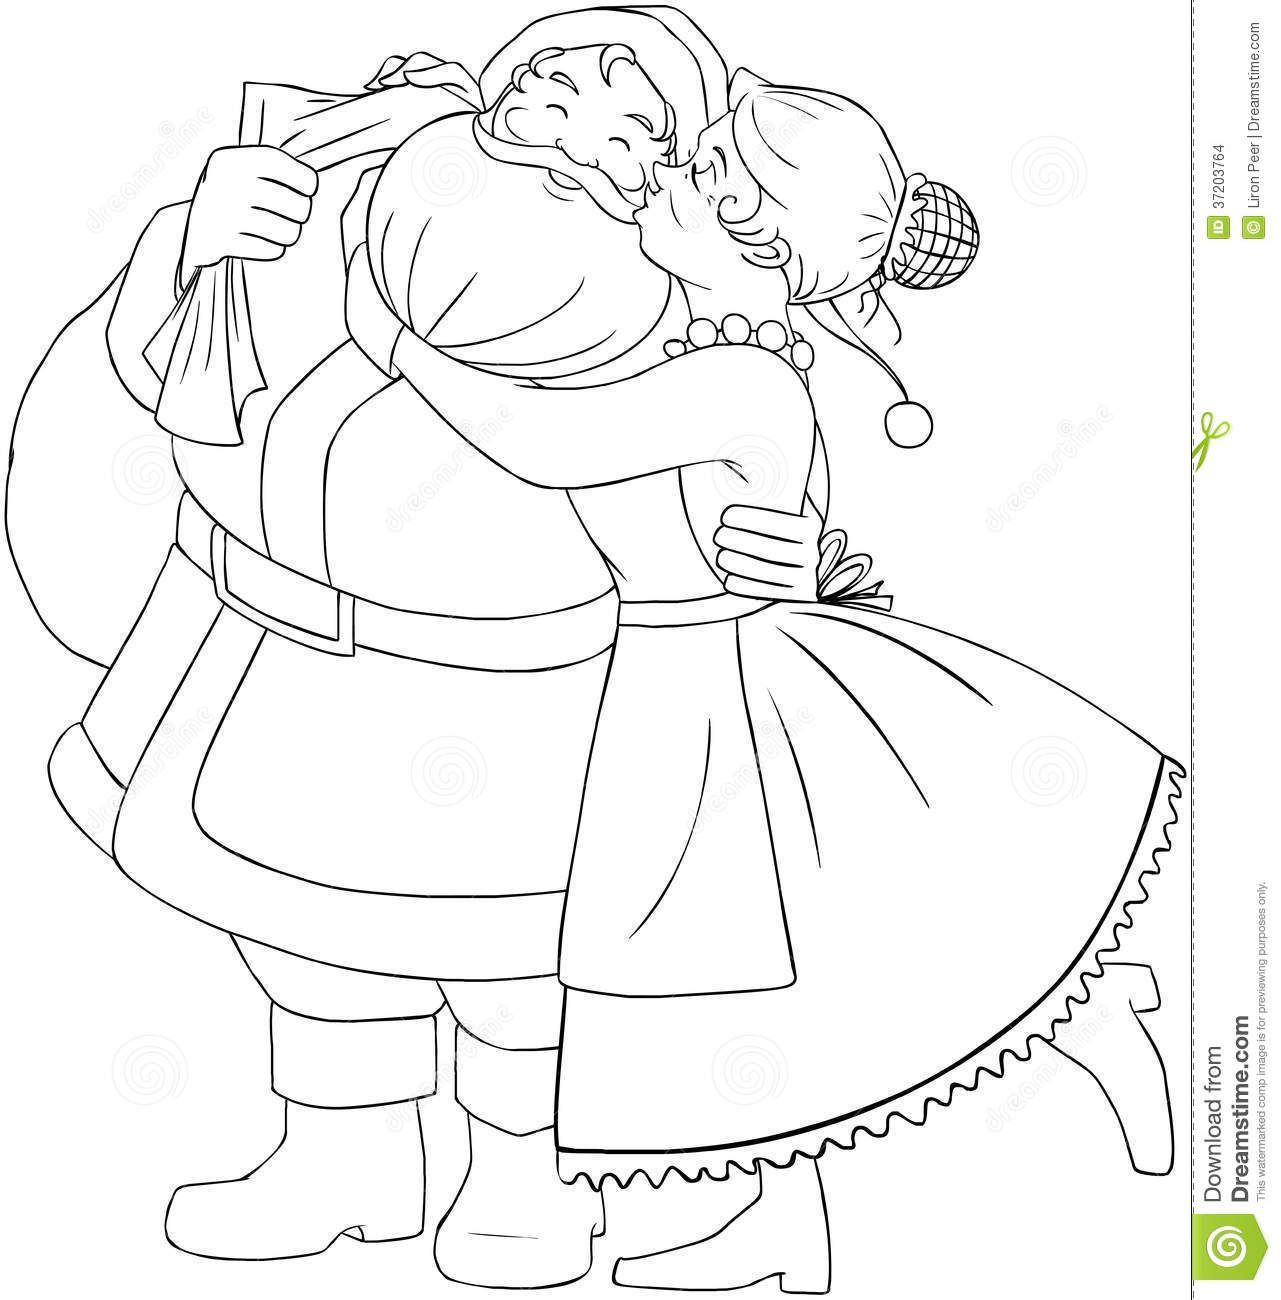 Santa And Mrs Claus Coloring Pages At Getcolorings